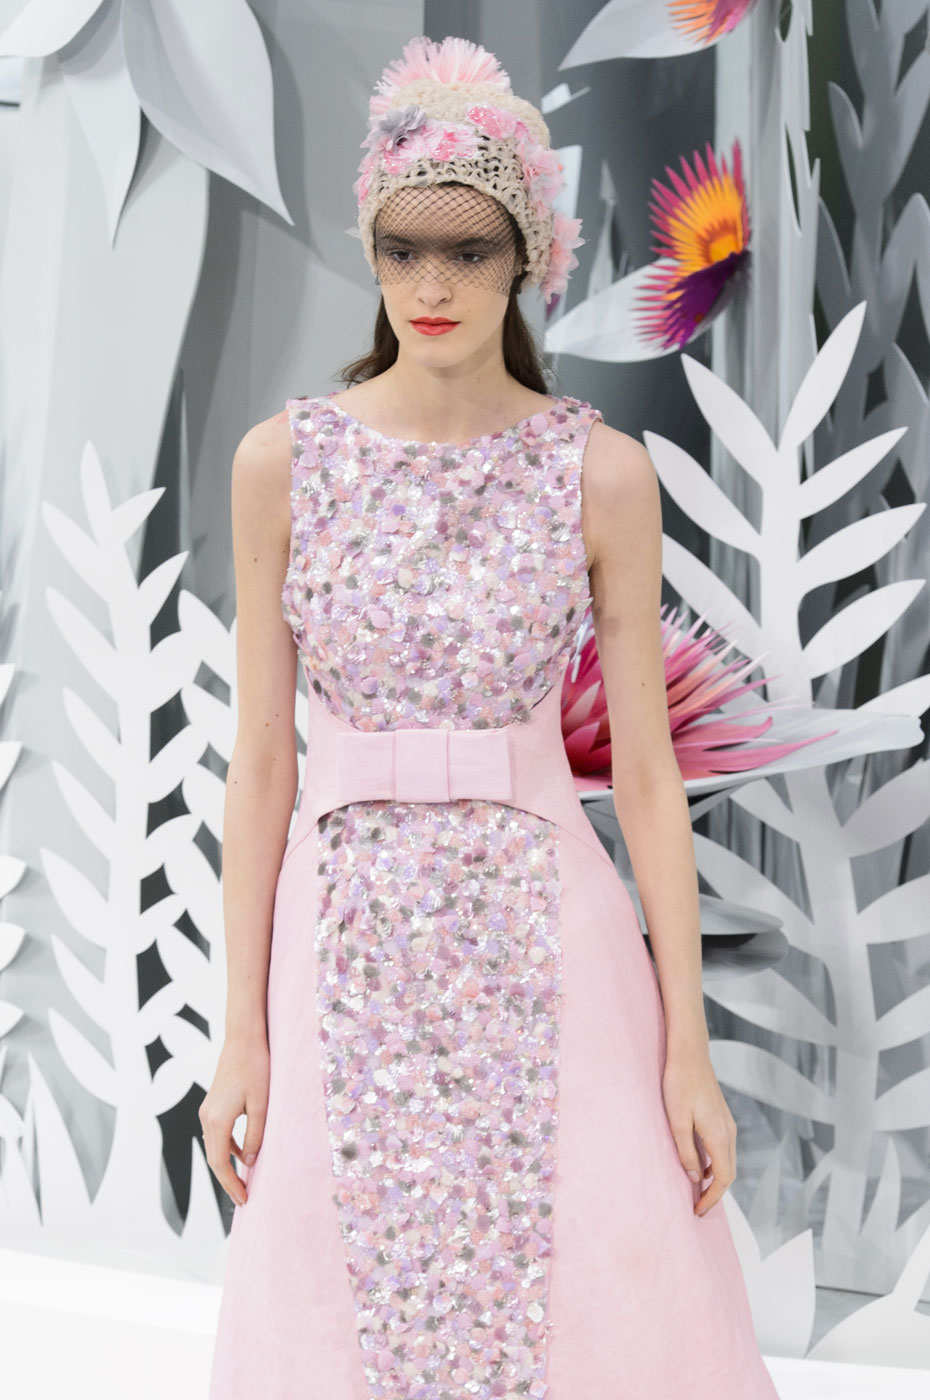 Chanel-fashion-runway-show-haute-couture-paris-spring-summer-2015-the-impression-132